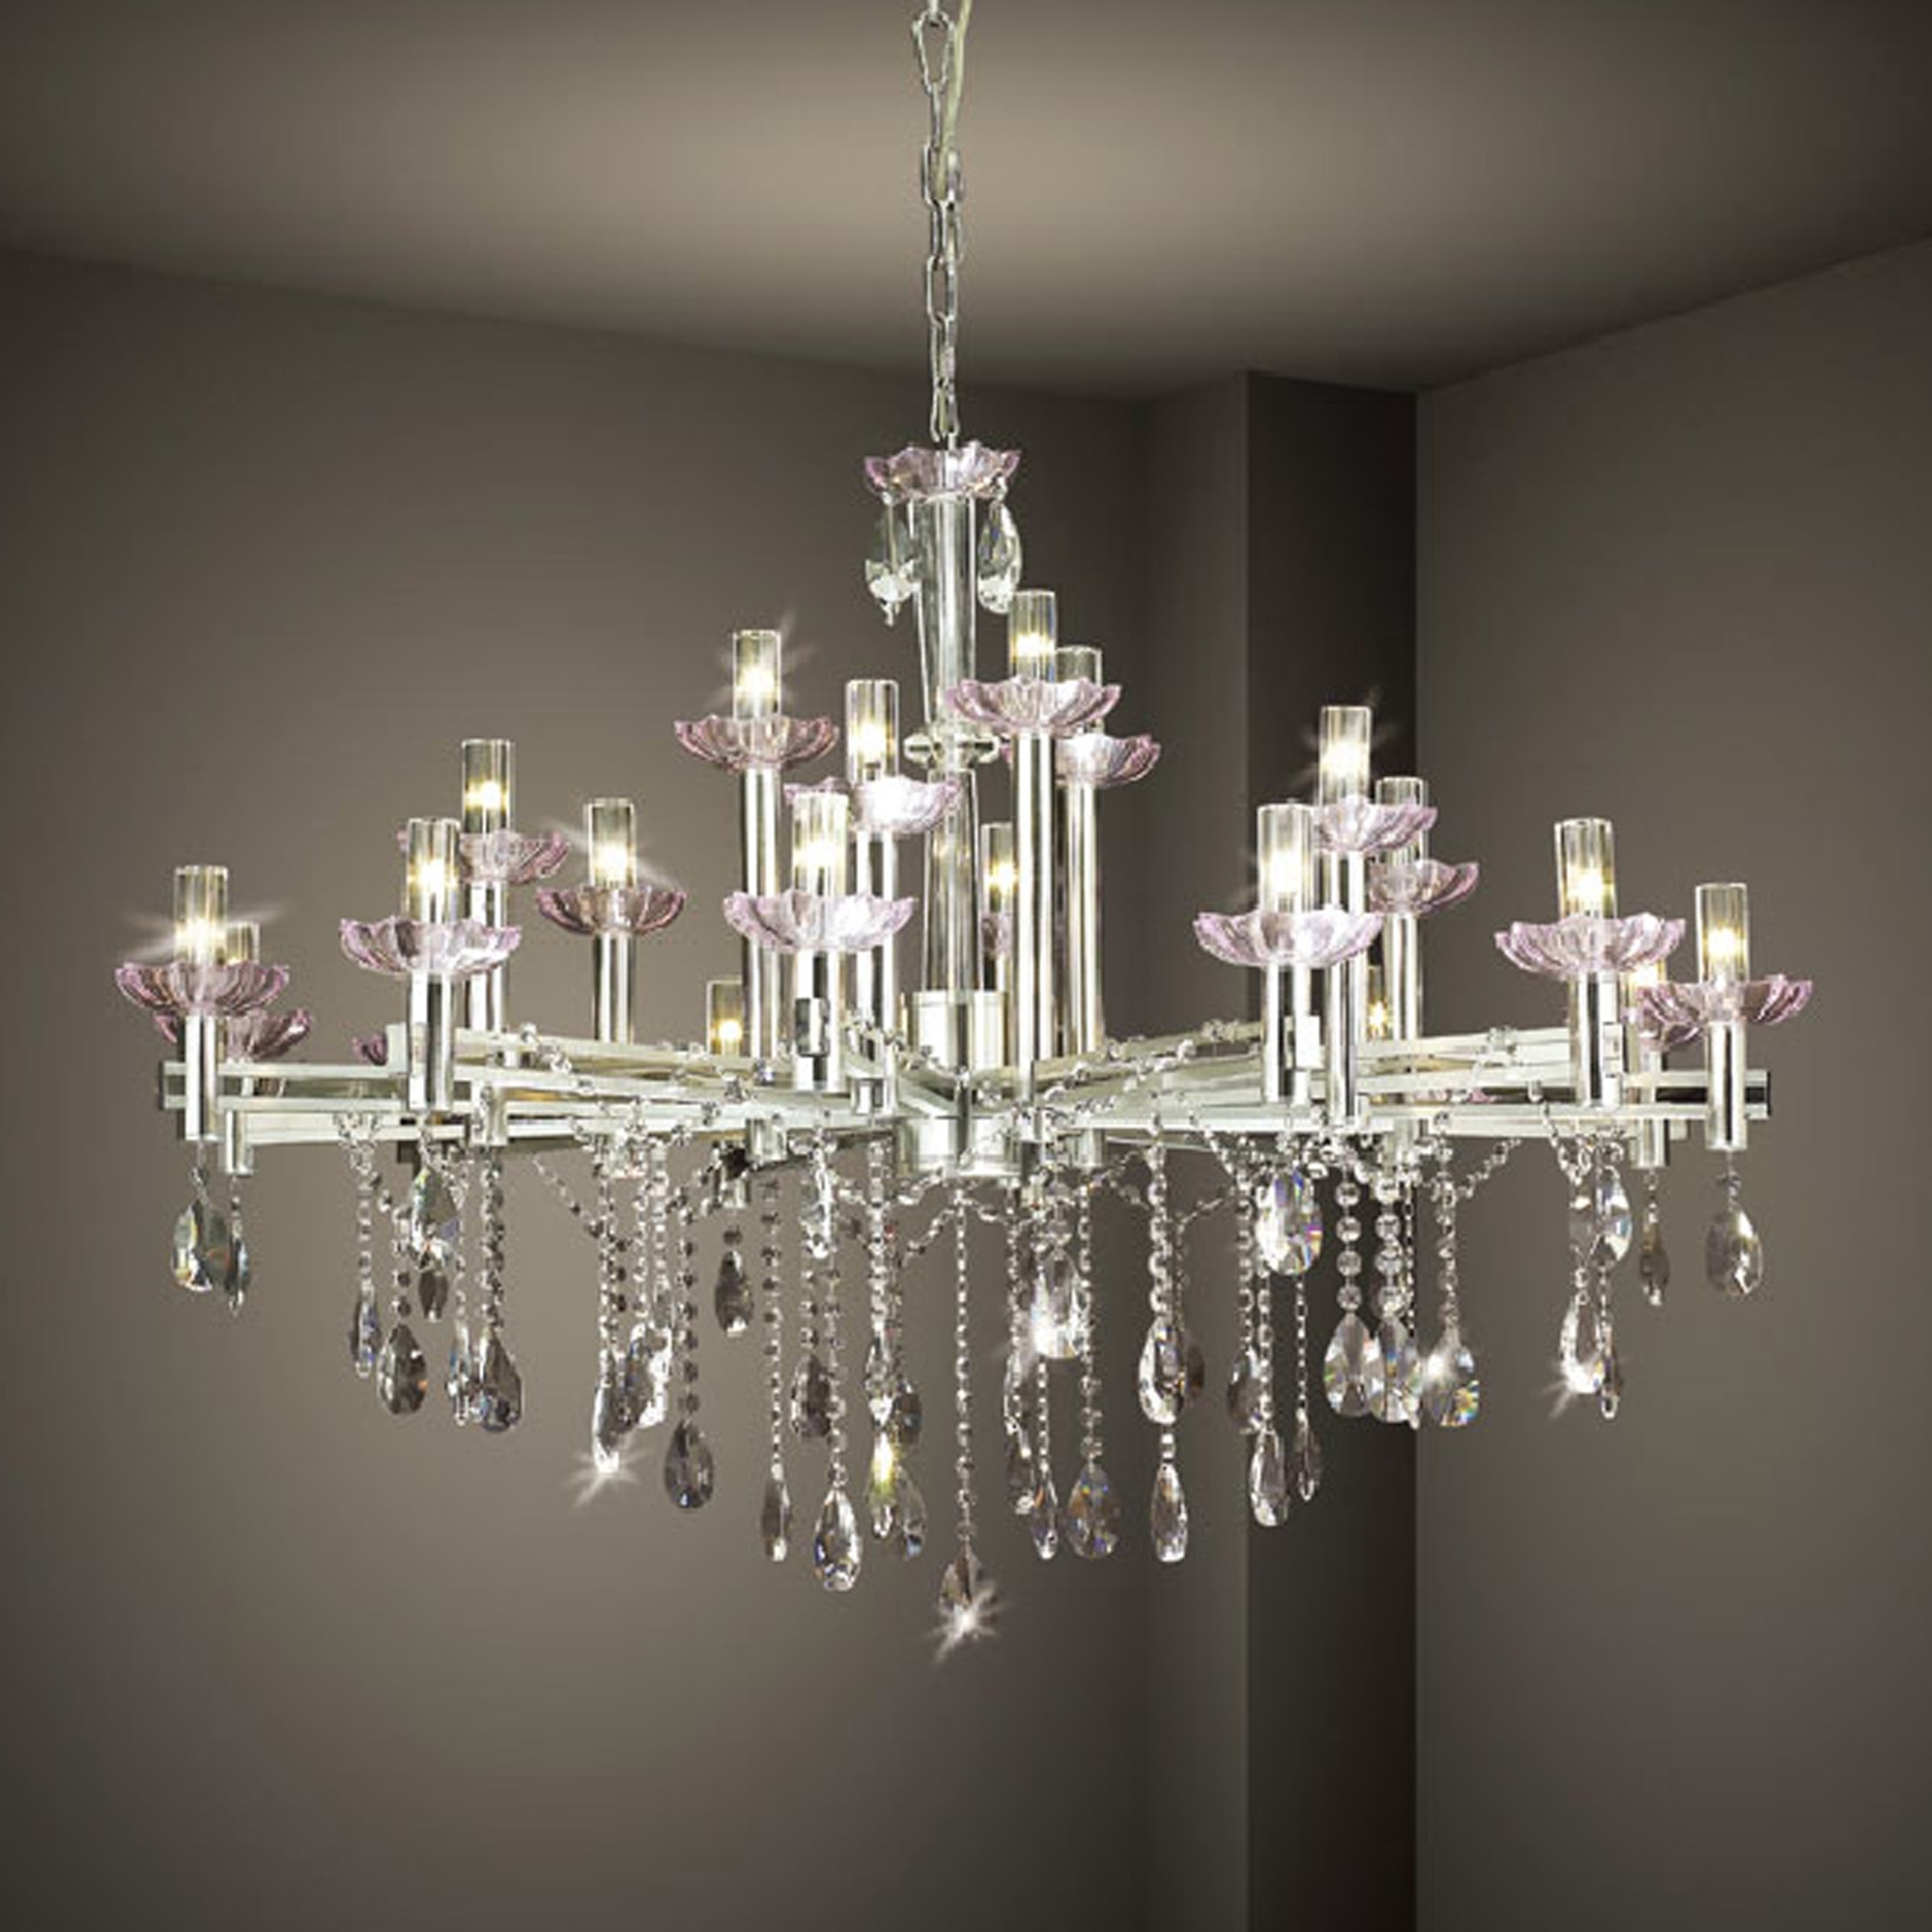 Modern Dining Chandeliers 15 Collection Of Large Contemporary Chandeliers